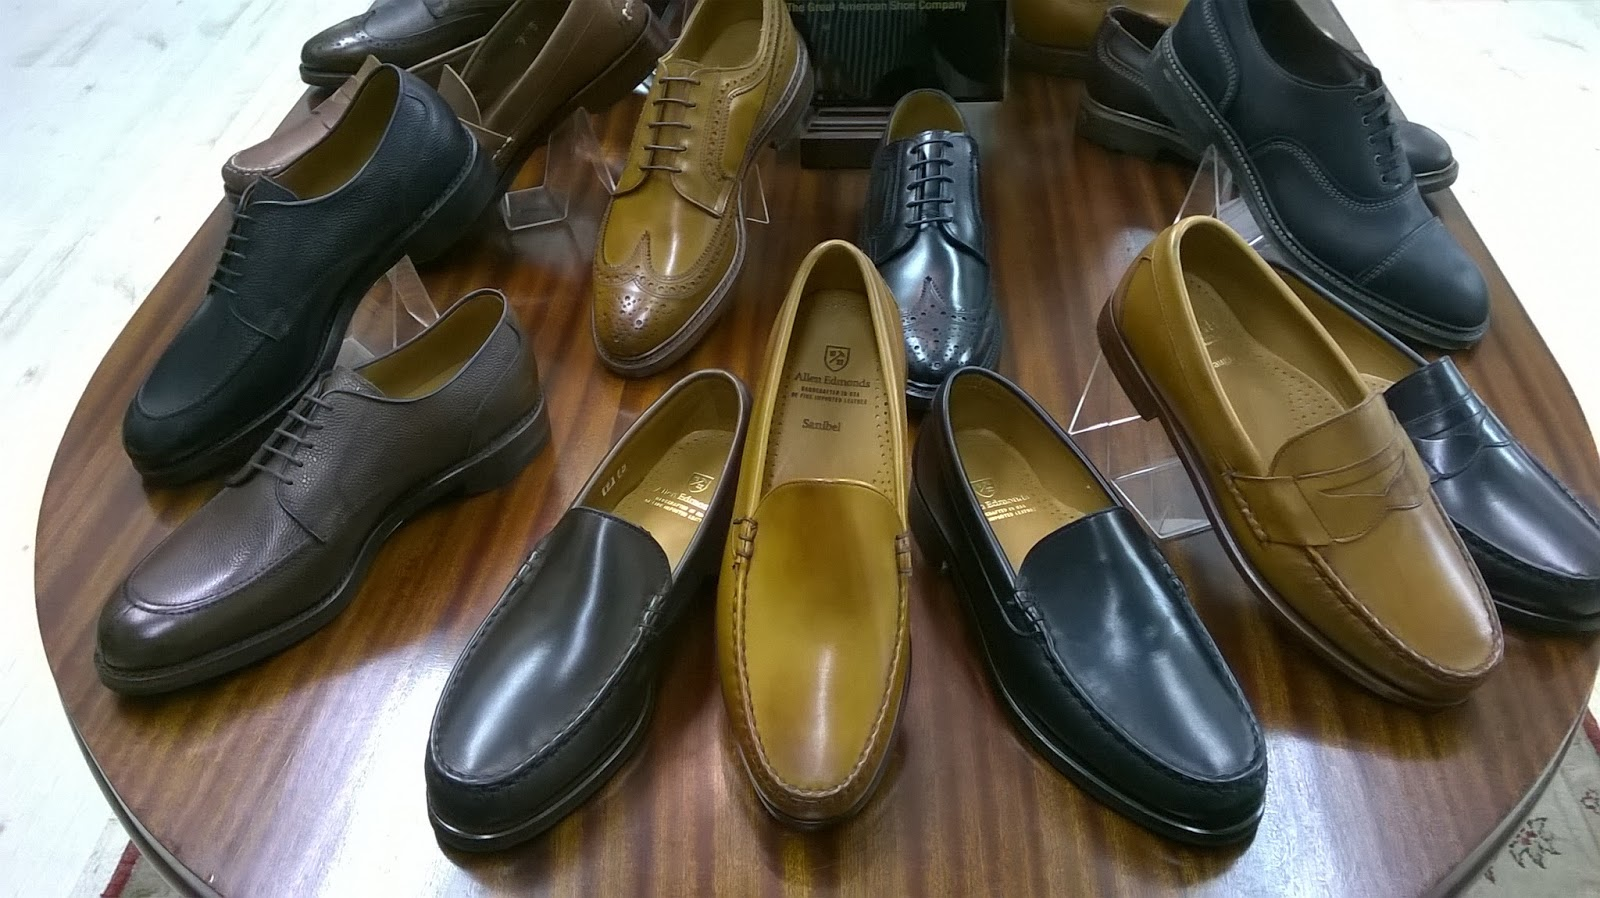 carvela shoes boys. brands: the great american shoe company carvela shoes boys